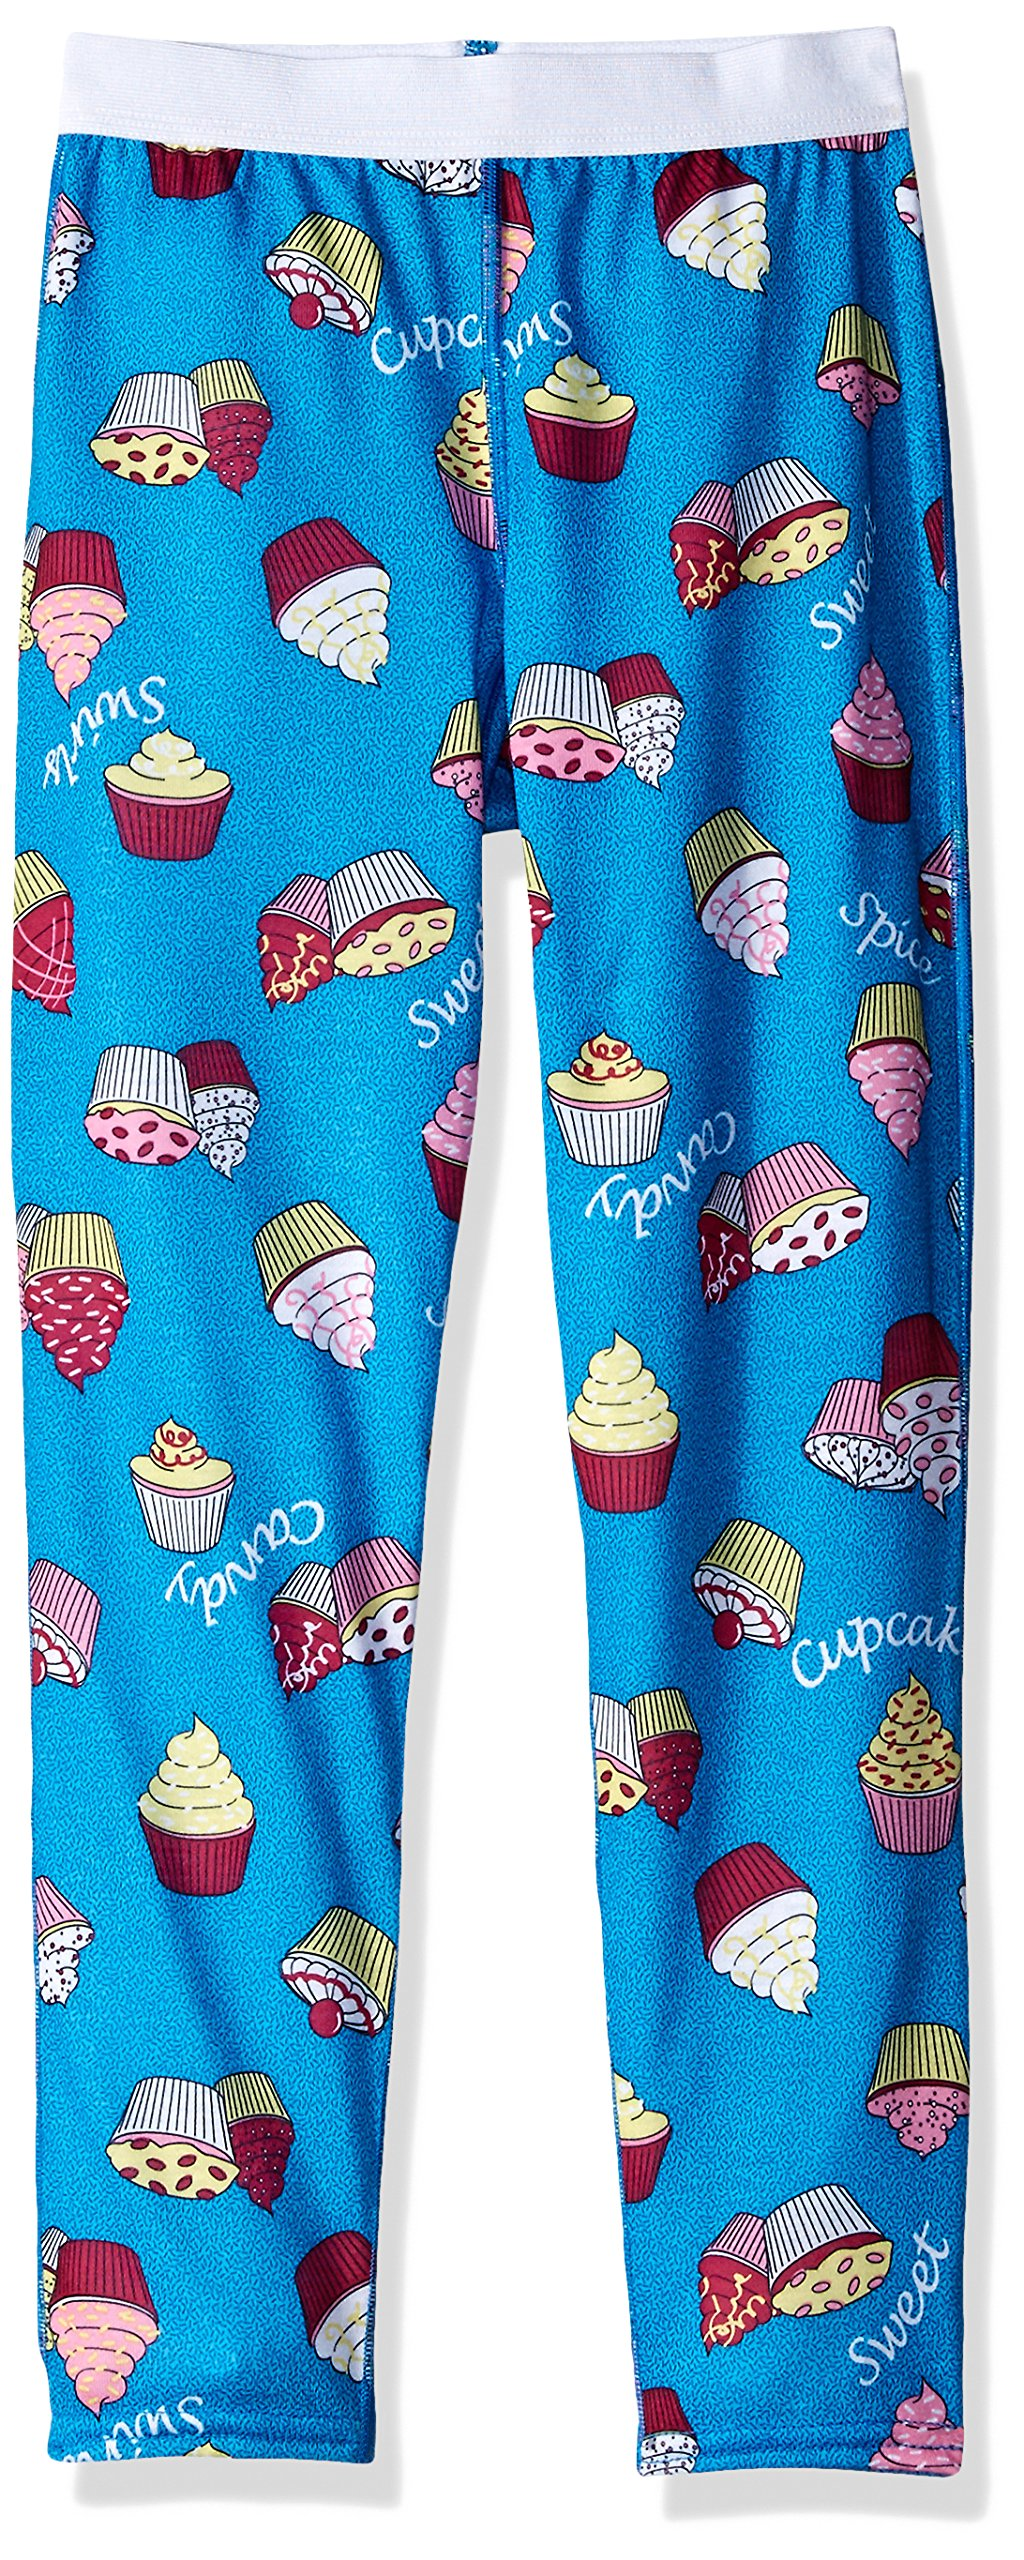 Hot Chillys Youth Pepper Skins Bottom, Cupcakes-Blue, Medium by Hot Chillys